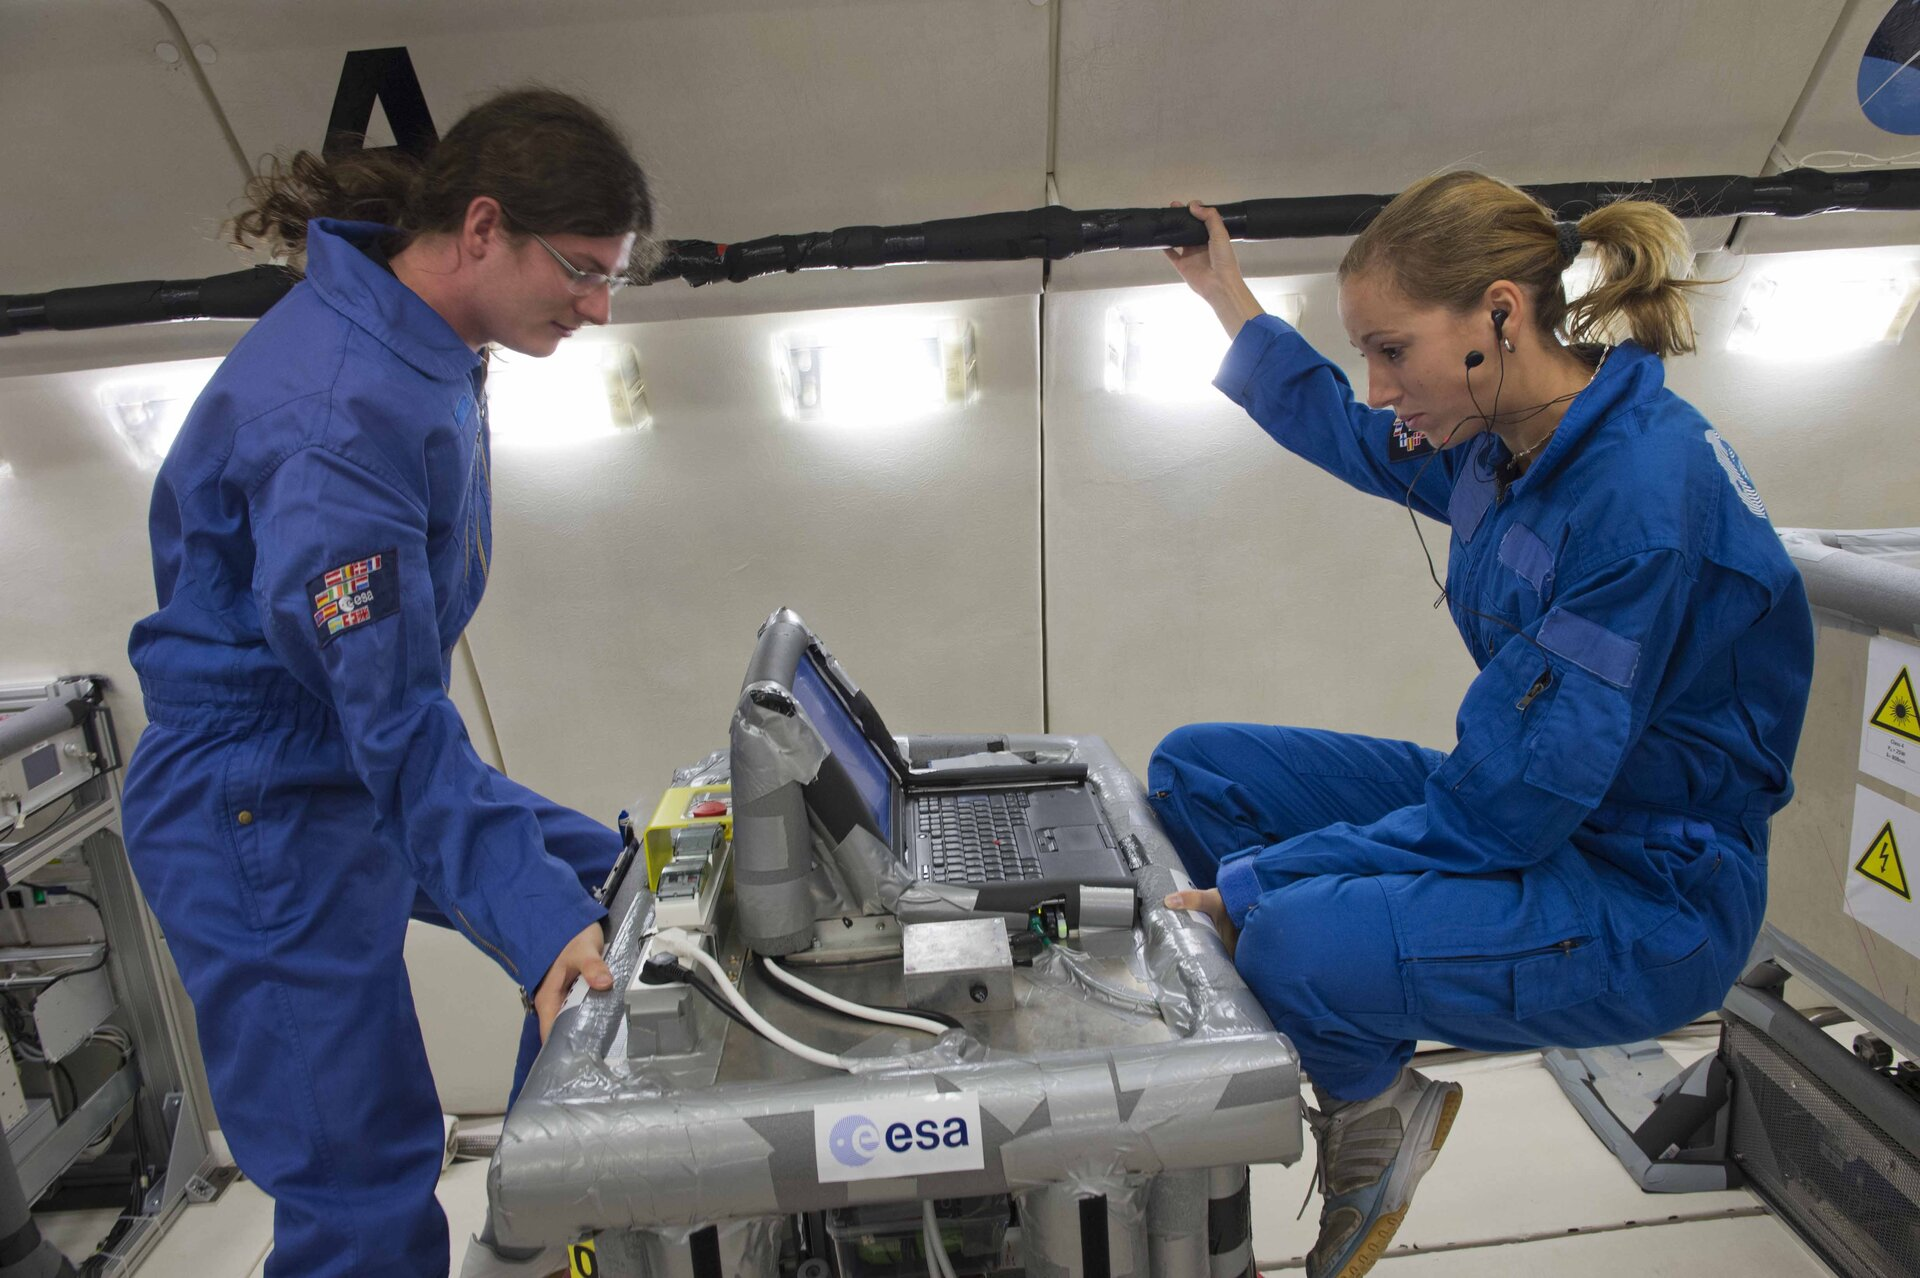 Dustbrothers students operating their experiment in microgravity